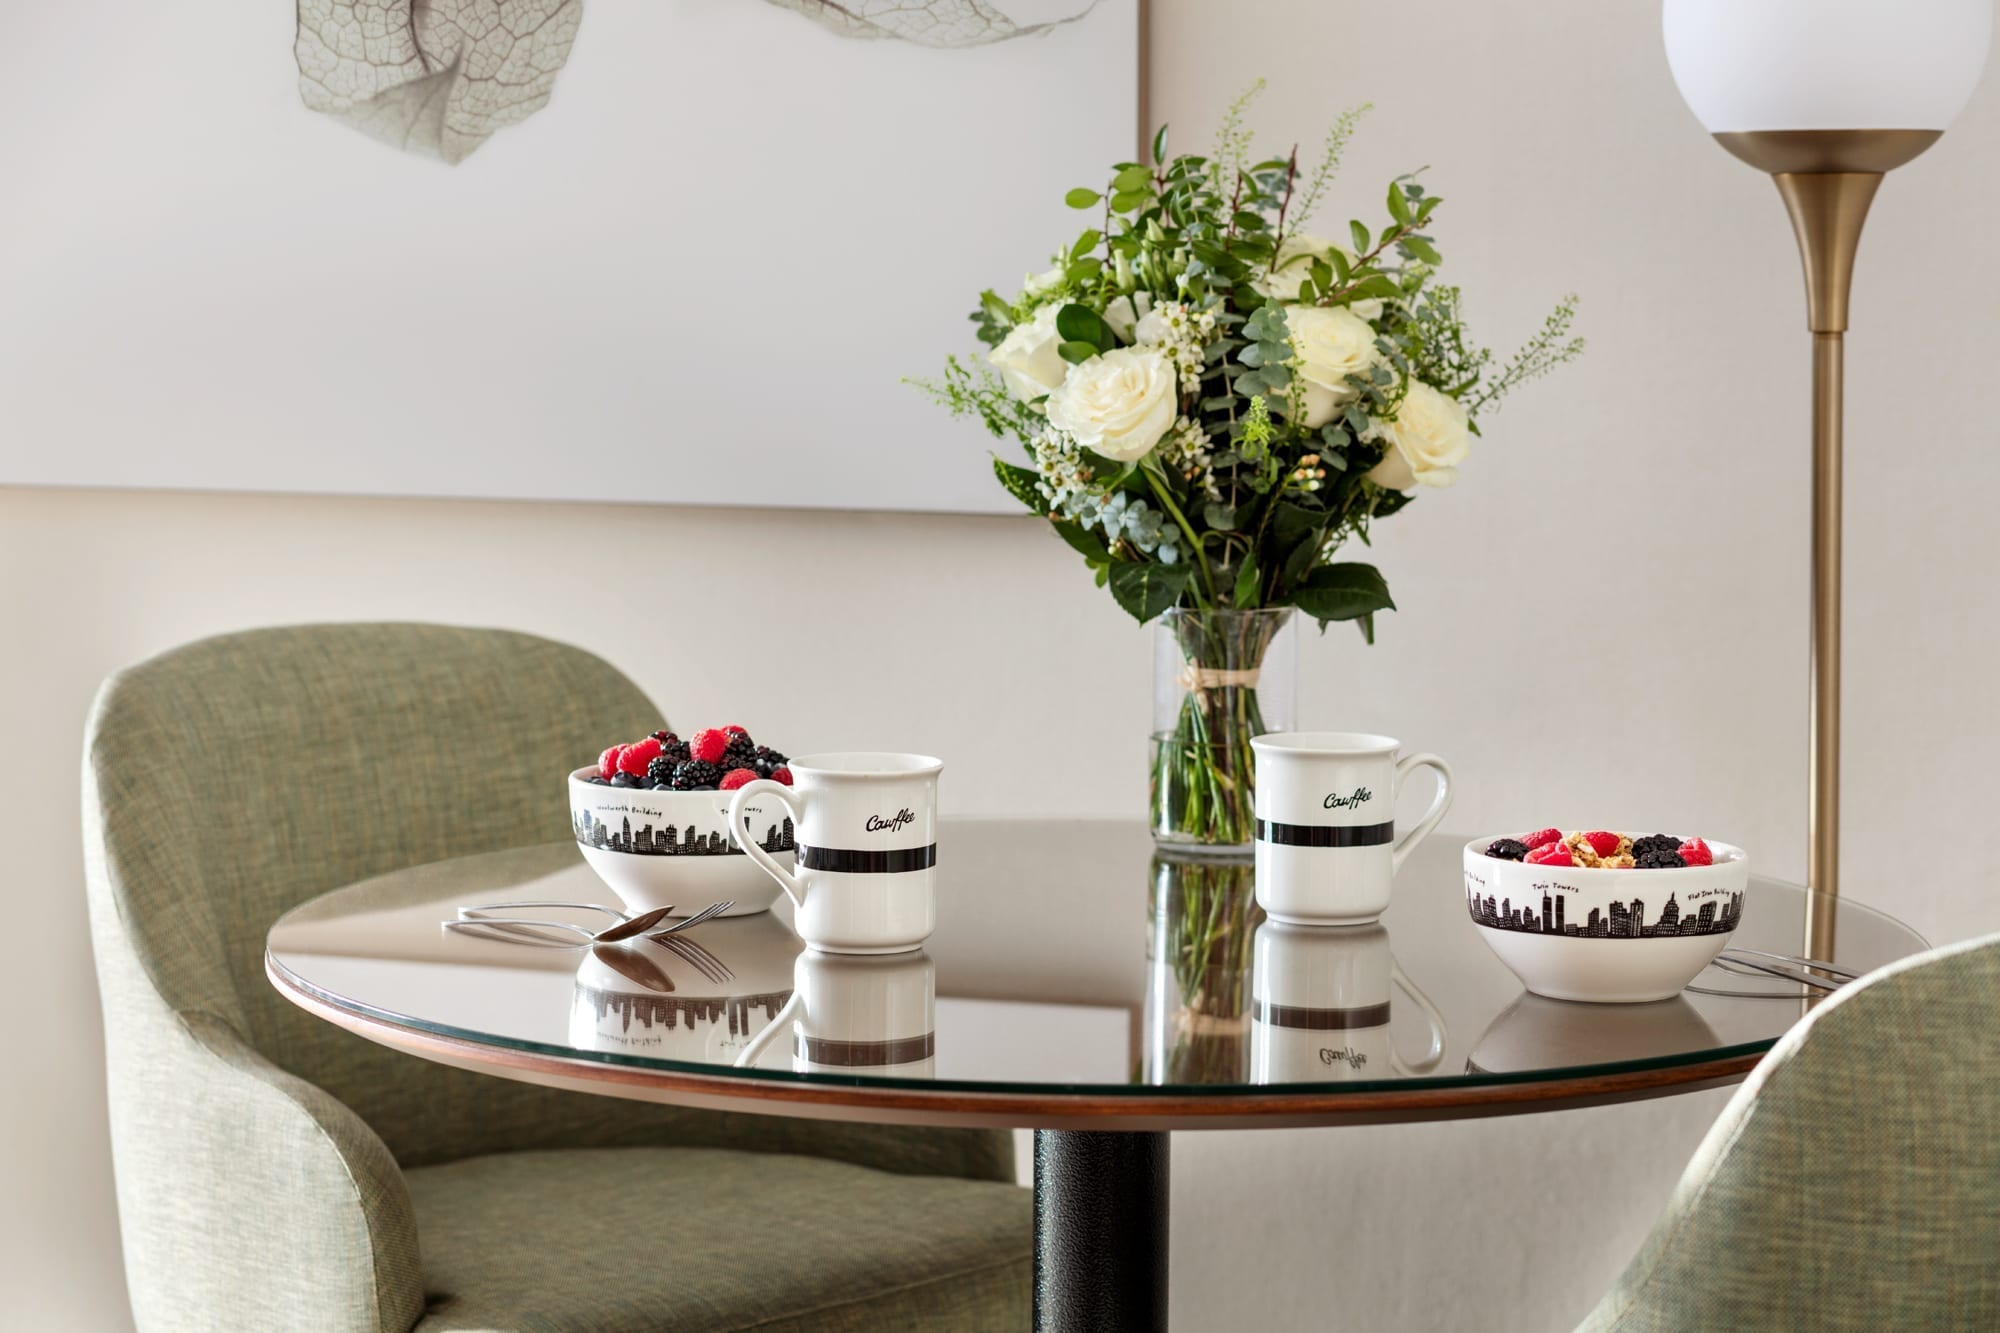 Round dining room table set up inside the Affinia Gardens Junior Suites. A bowl of cereal is placed at each of the two settings. A glass flower vase rests off to one side.